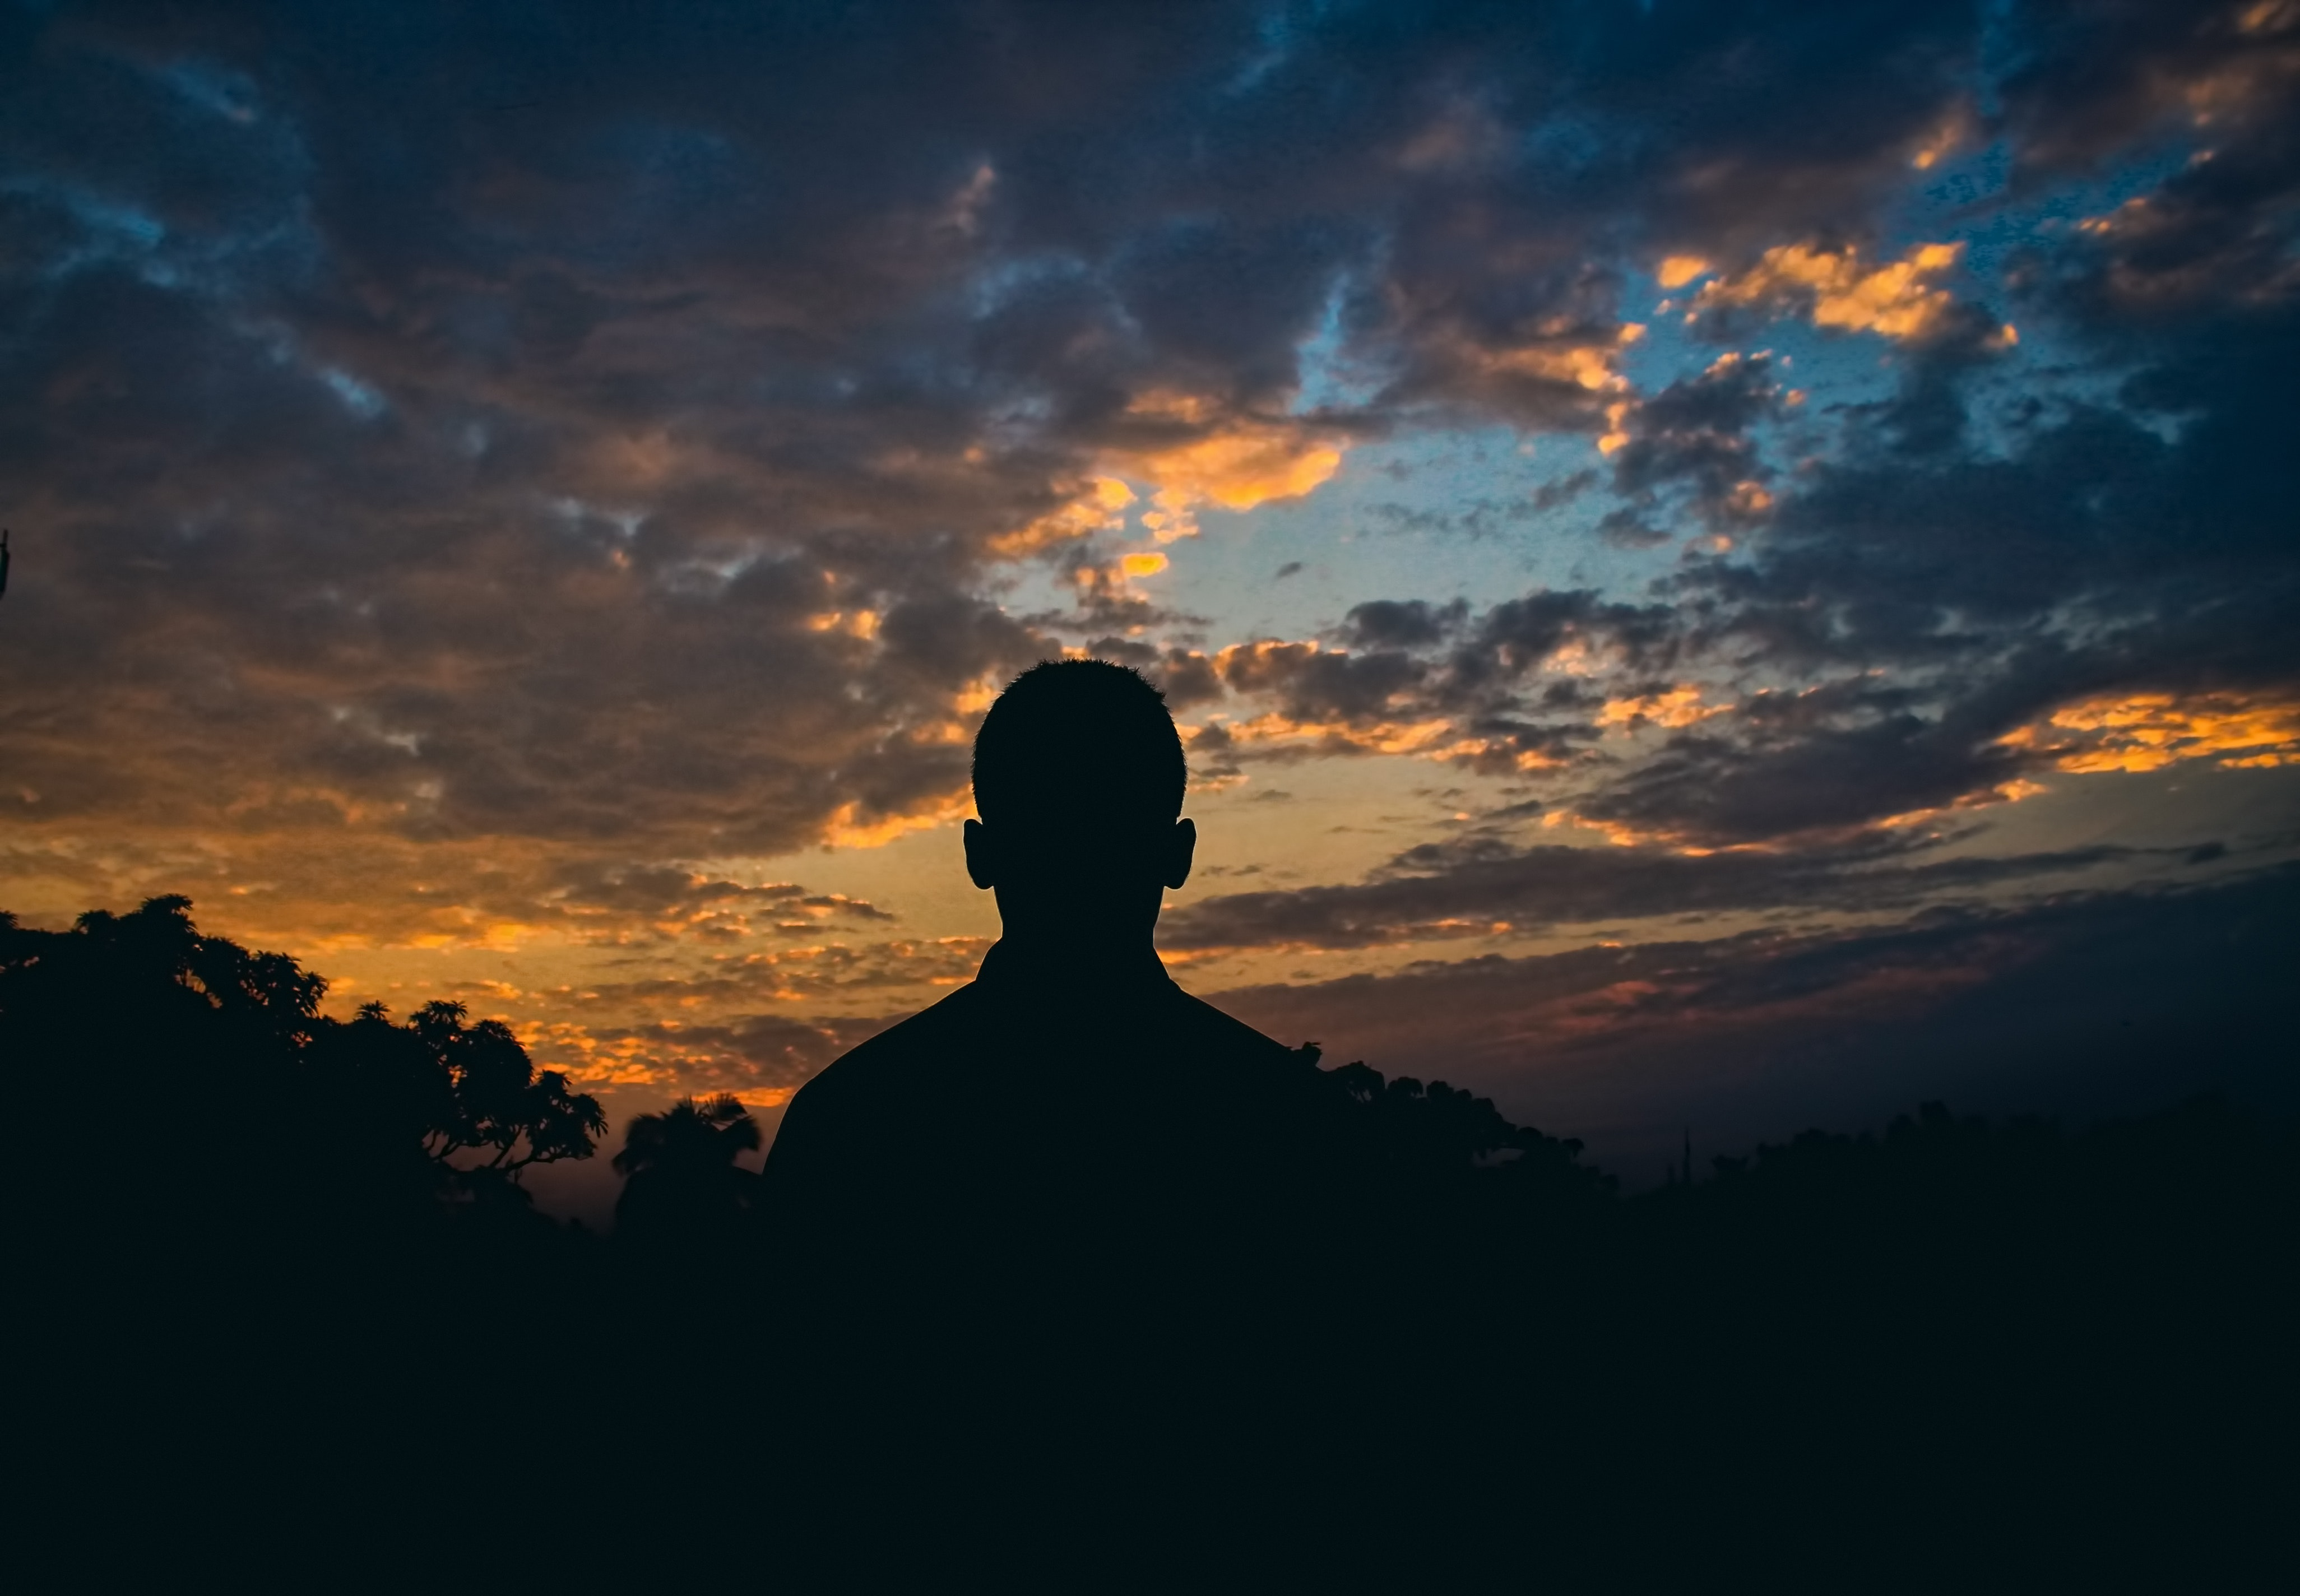 Silhouette Of Man Watching Golden Hour, Person, Silhouette, Sunrise, Sunset, HQ Photo